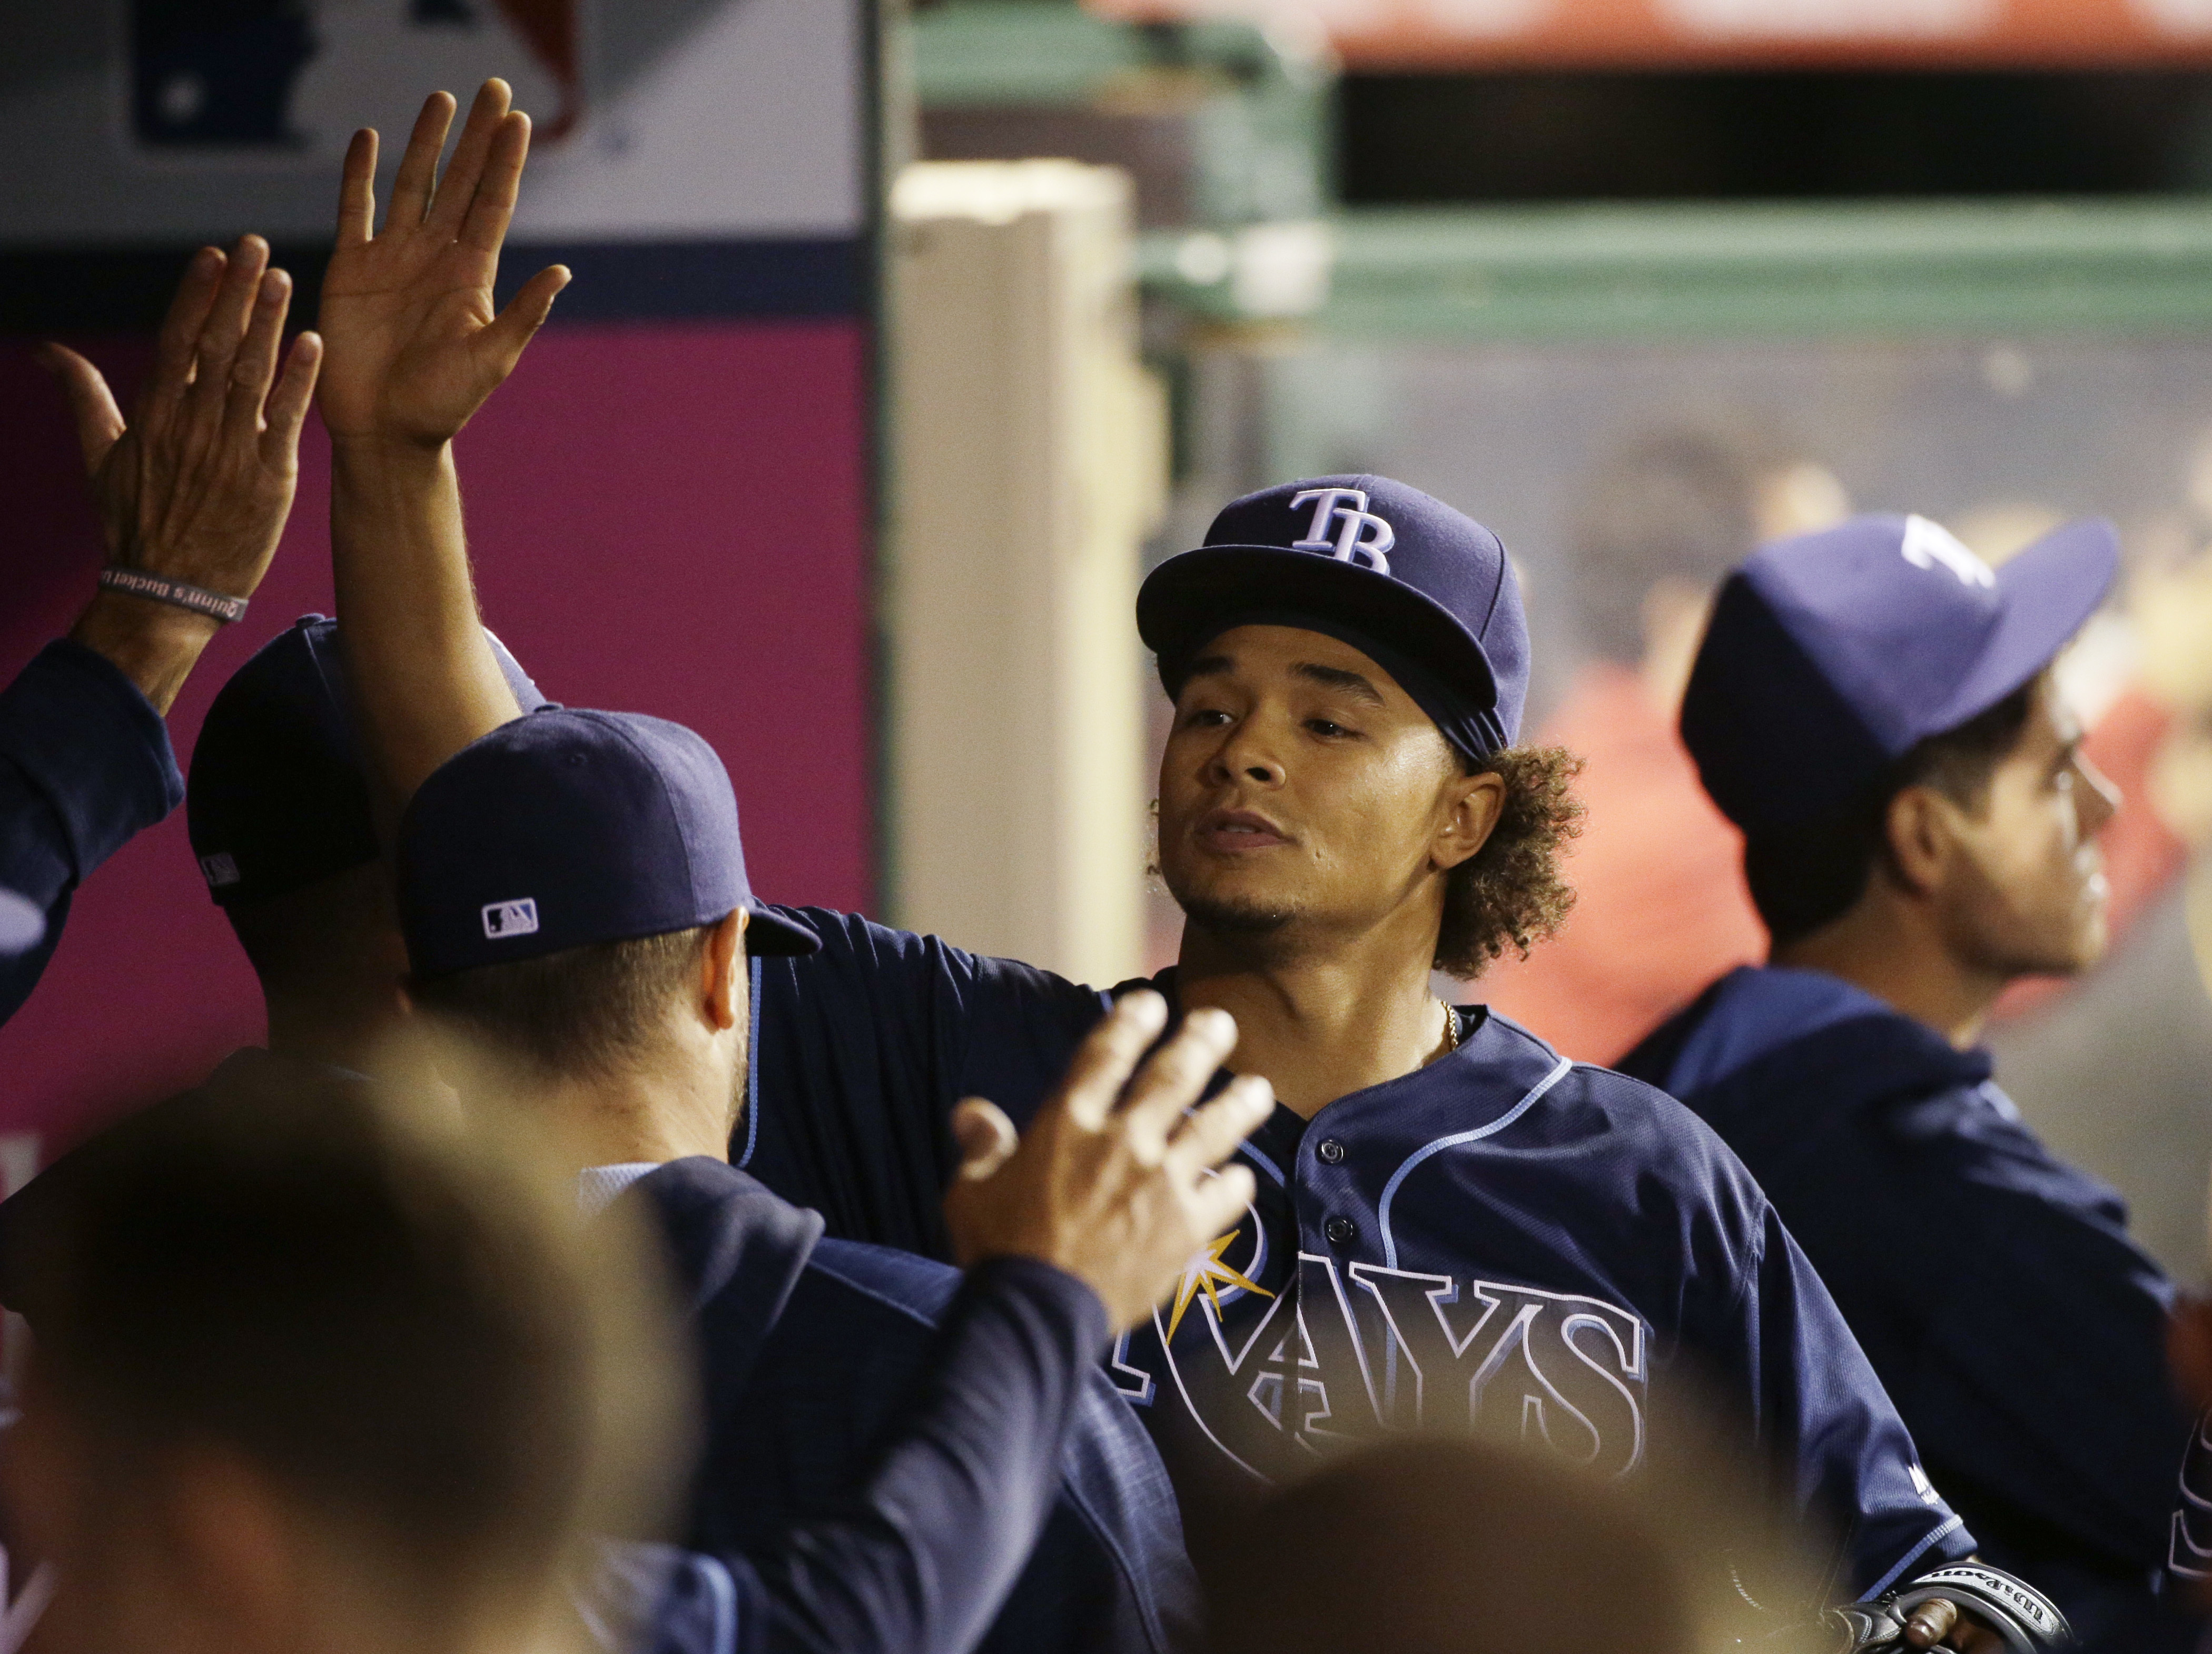 Tampa Bay Rays starting pitcher Chris Archer is greeted by teammates in the dugout after the bottom of the sixth inning of a baseball game, Friday, May 6, 2016, in Anaheim, Calif. (AP Photo/Jae C. Hong)